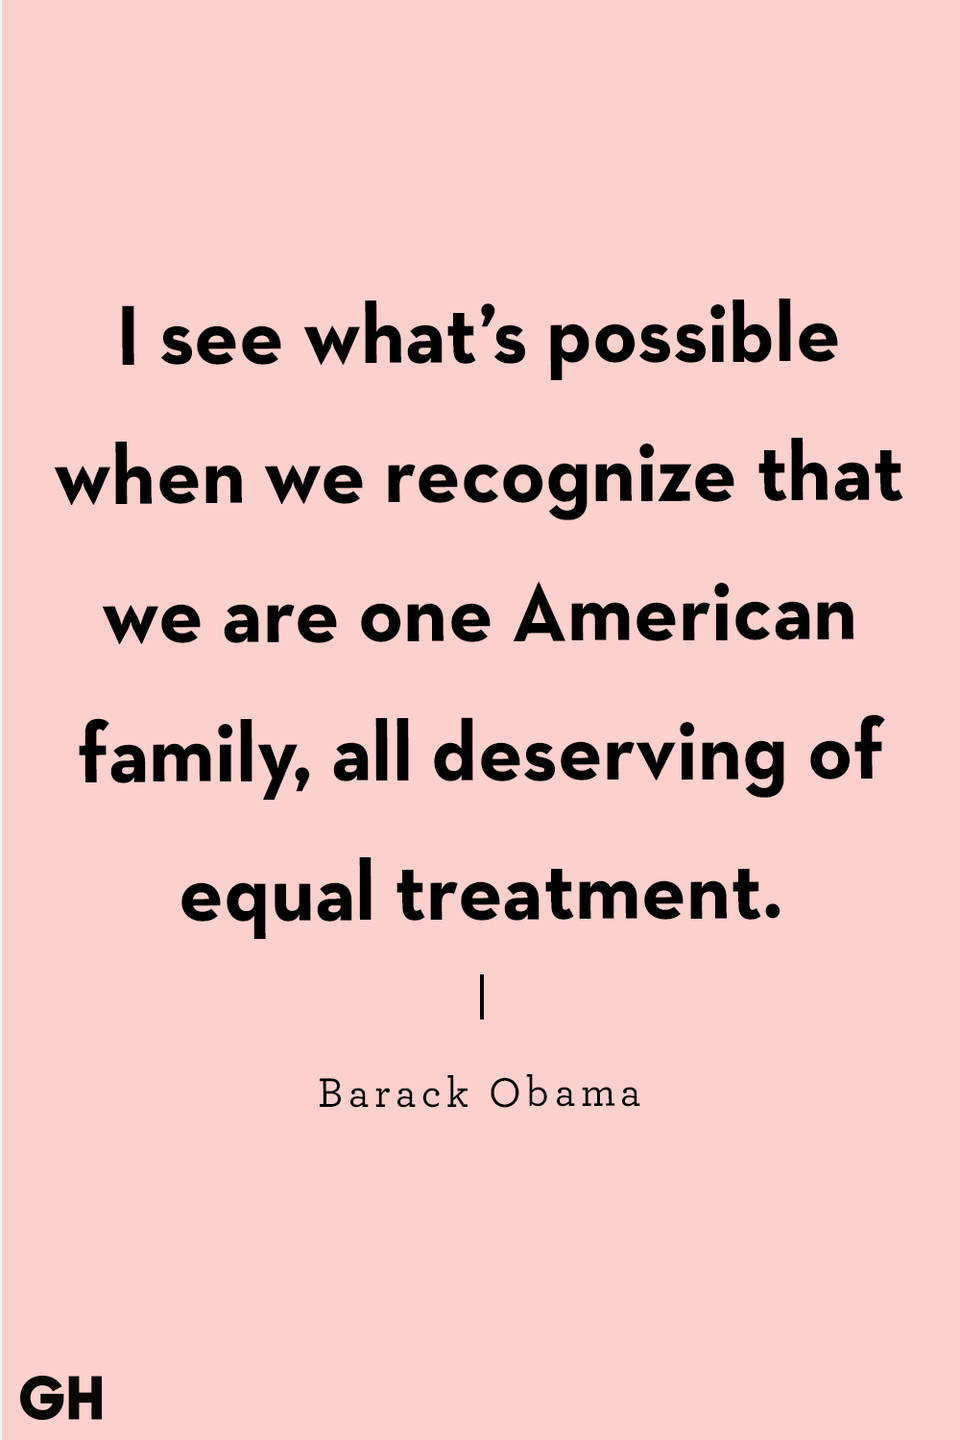 I see what's possible when we recognize that we are one American family, all deserving of equal treatment. – Barack Obama [960 × 1440]